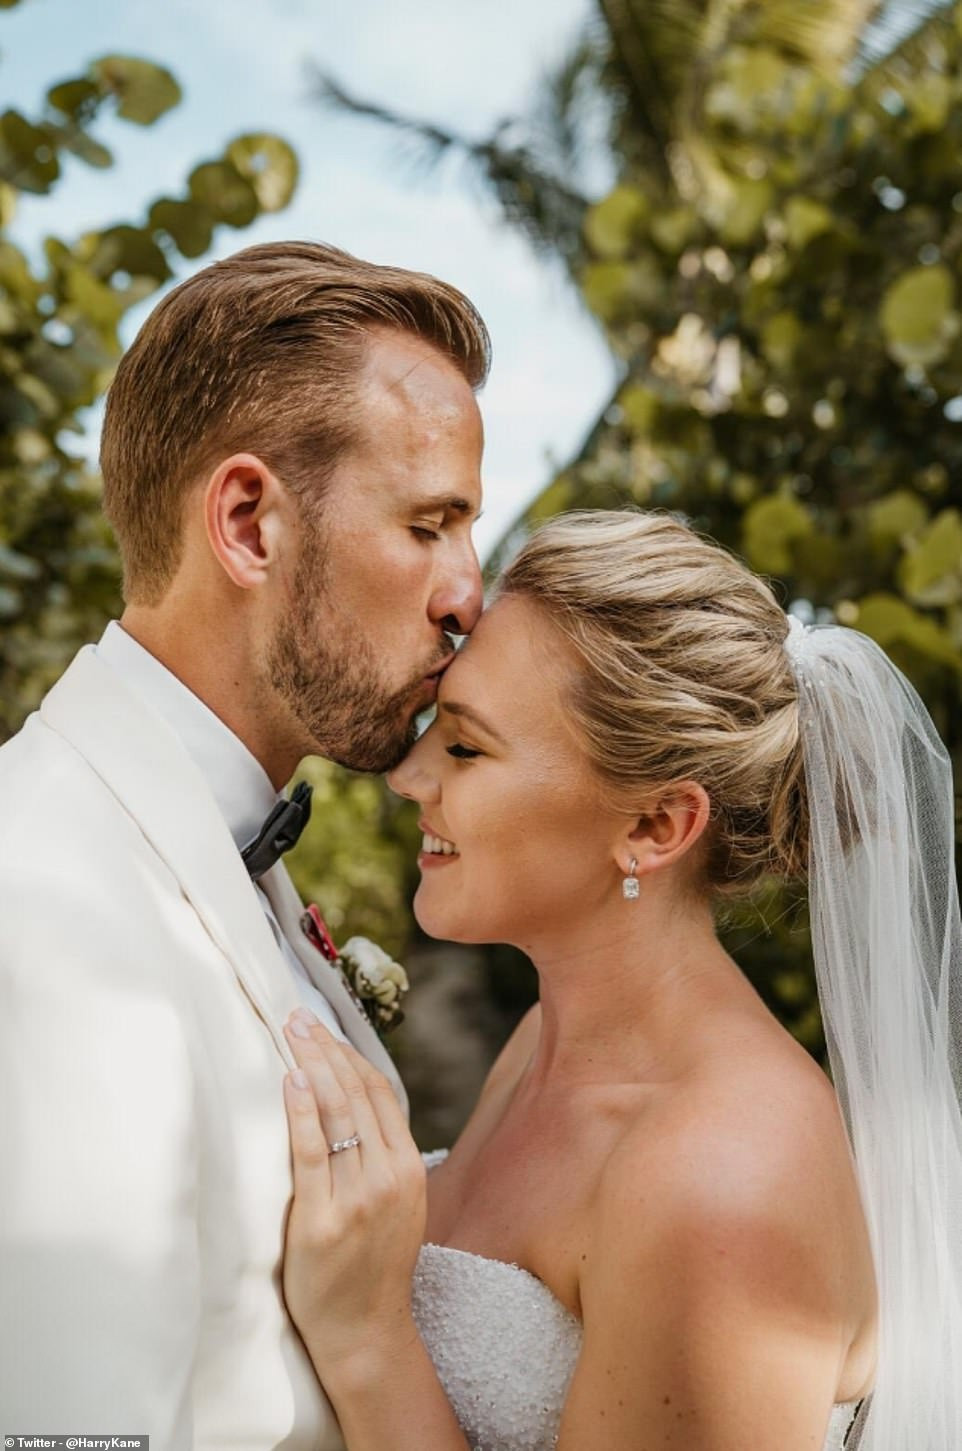 England captain Harry Kane weds childhood sweetheart Katie Goodland in secret ceremony at exotic resort (Photos)